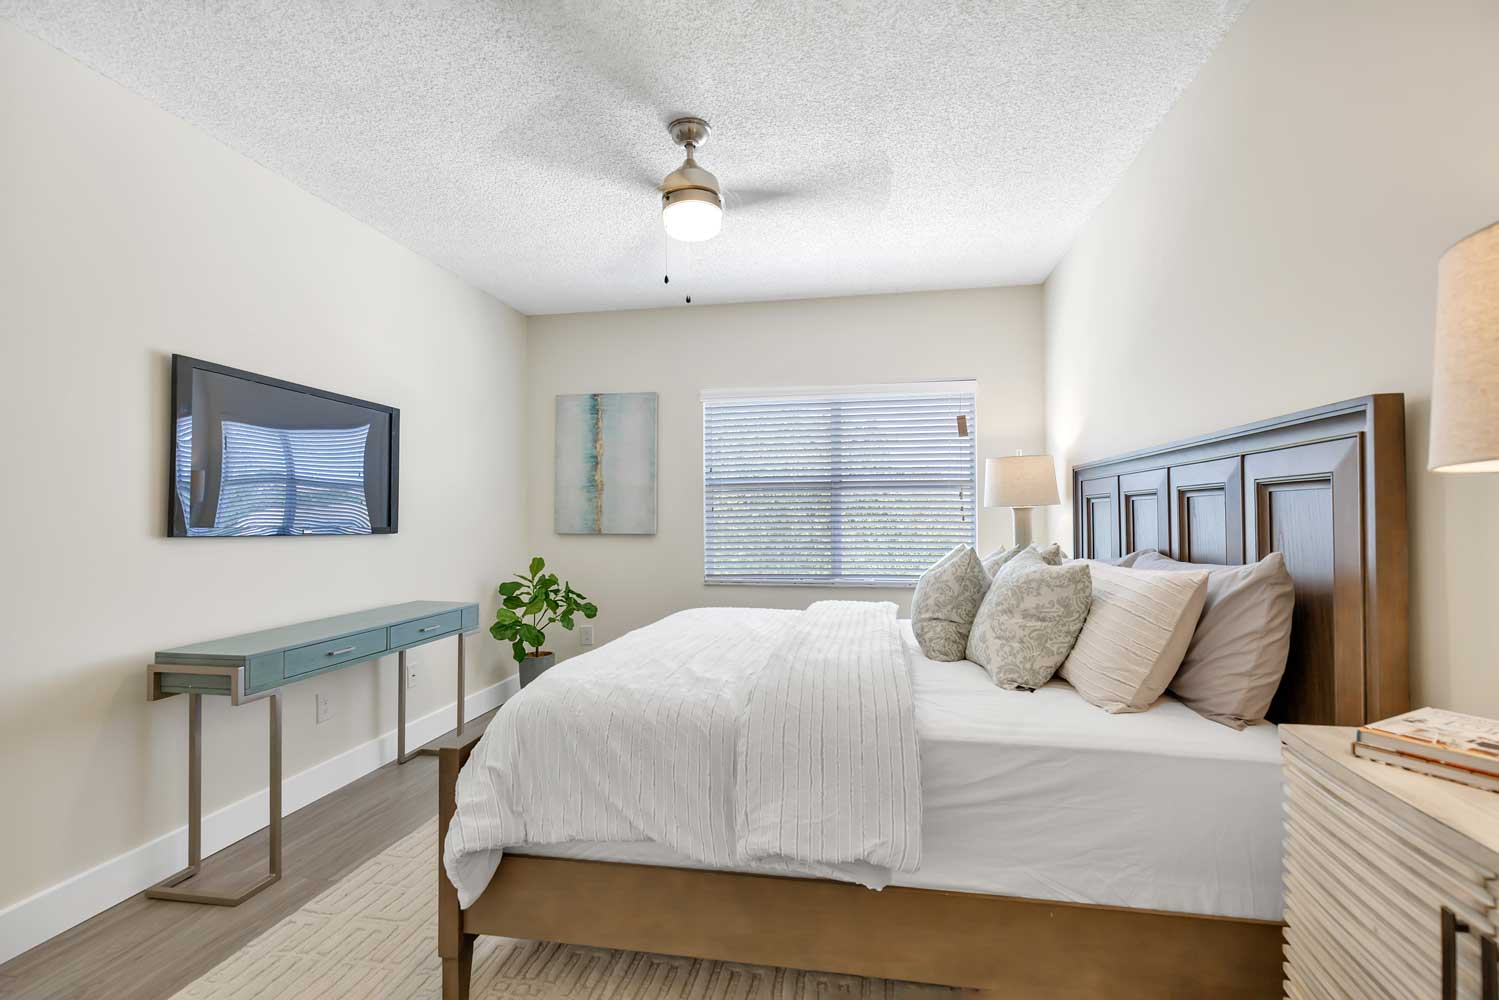 Ceiling Fans Available at New Castle Lake in Miami, FL